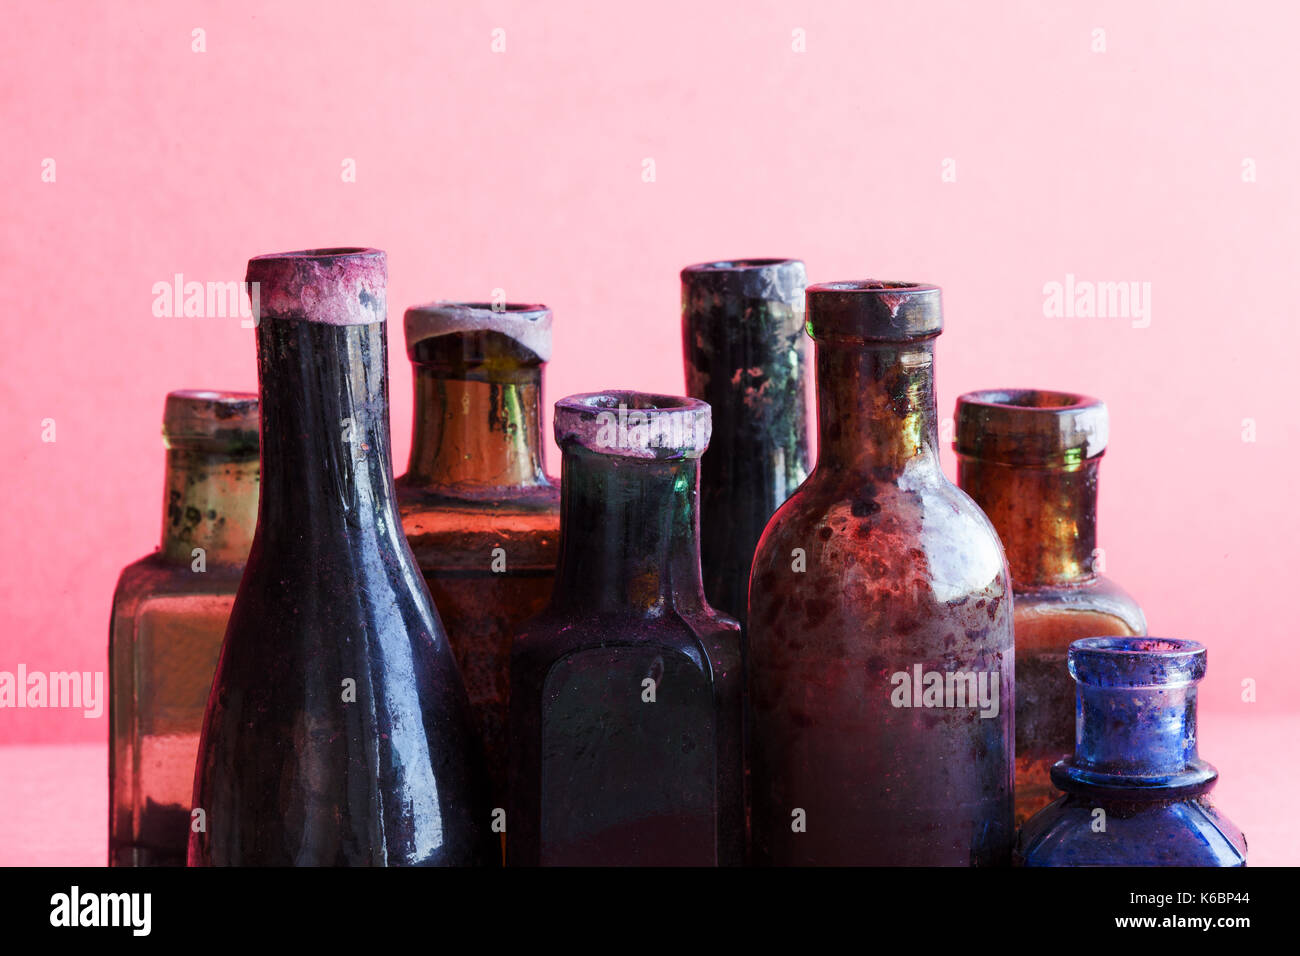 Retro design bottles macro view. Colorful dirty glass flacon set. Pink background, shallow depth of field, copy space. - Stock Image